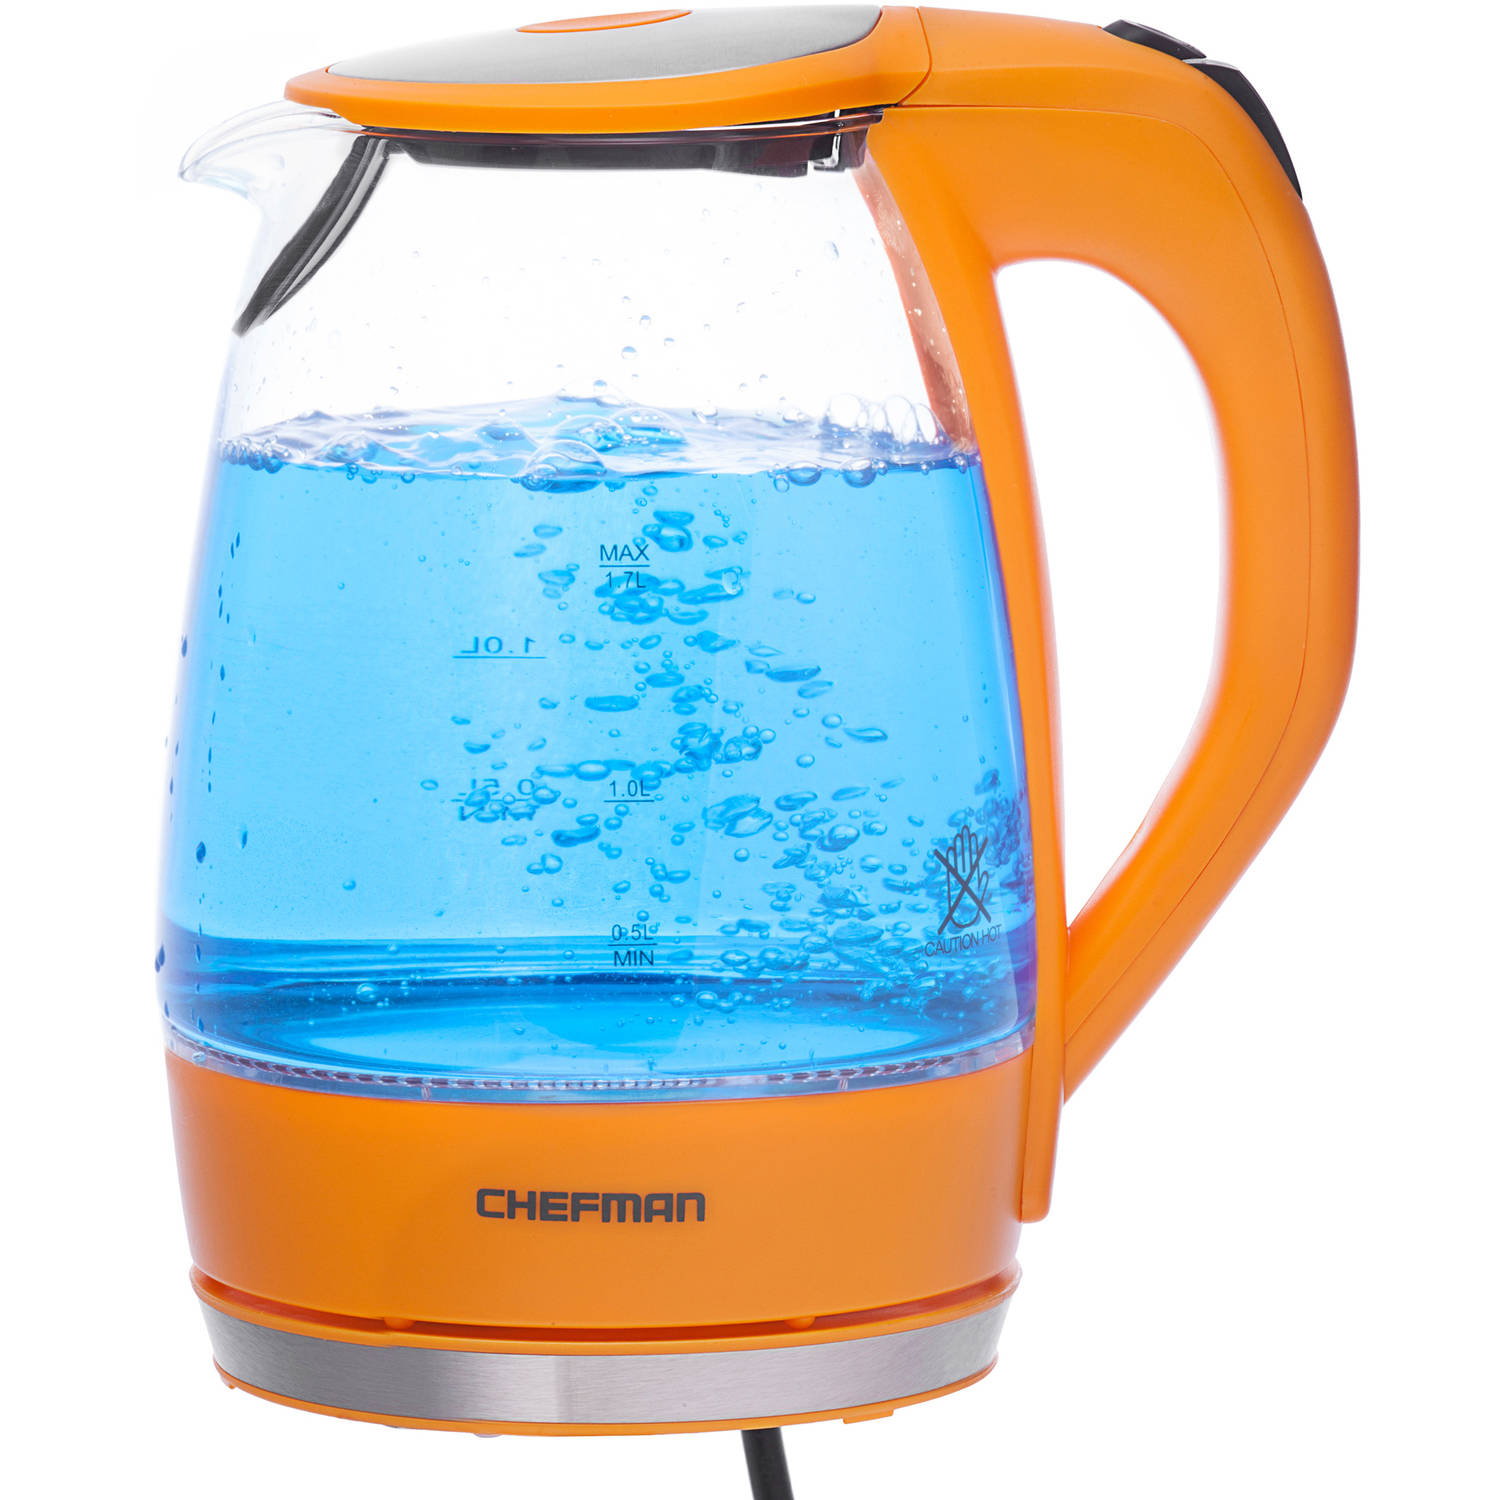 Chefman Electric Glass Cordless Kettle, Orange